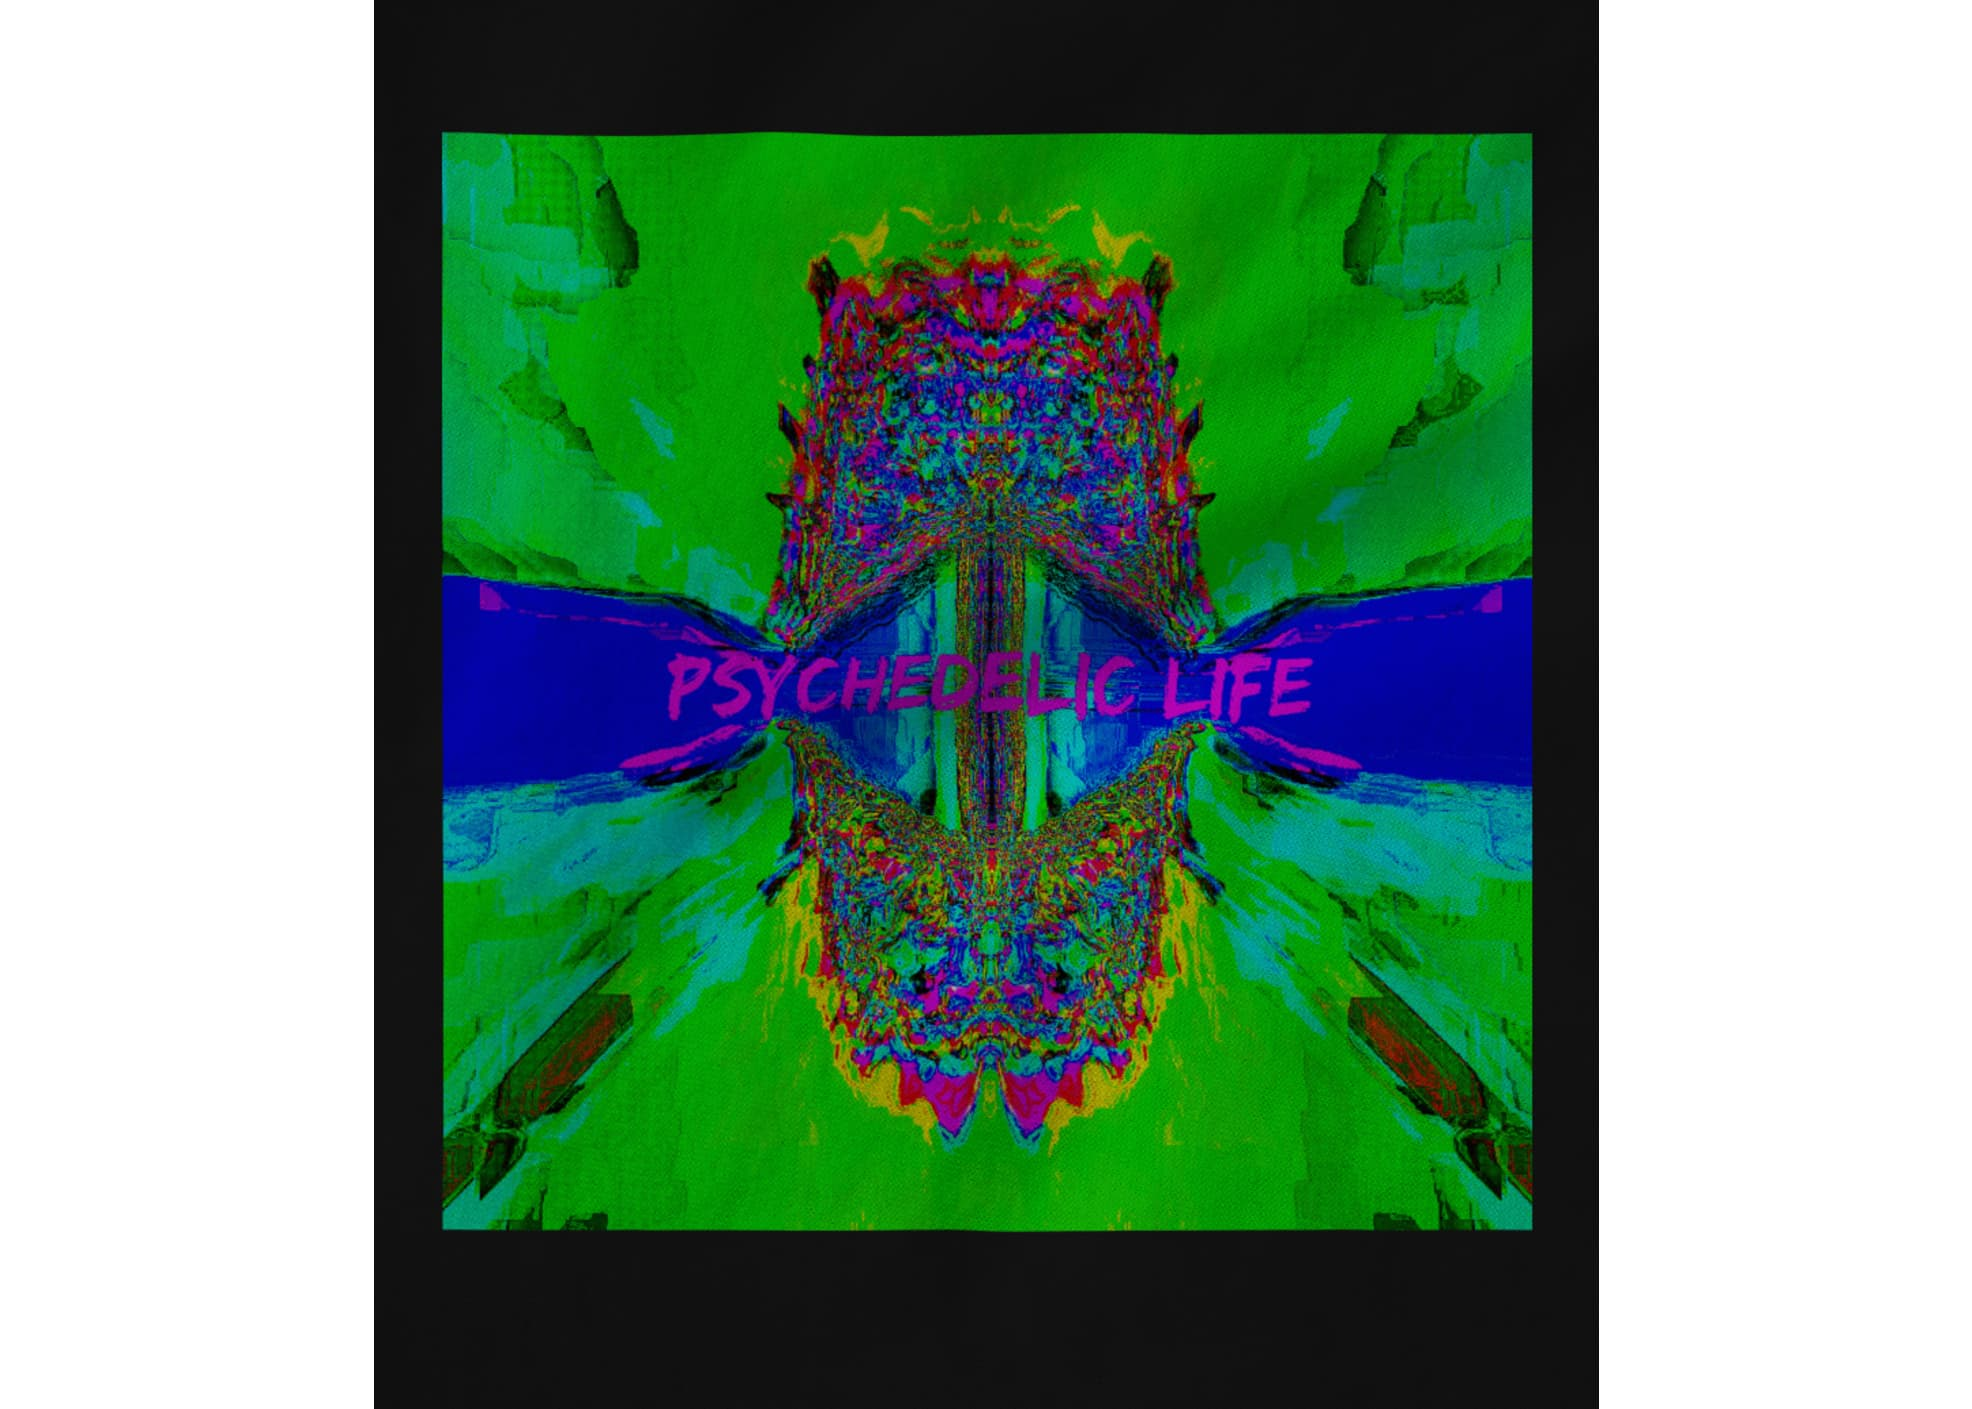 Collections of dead souls psychedelic life 1617296460